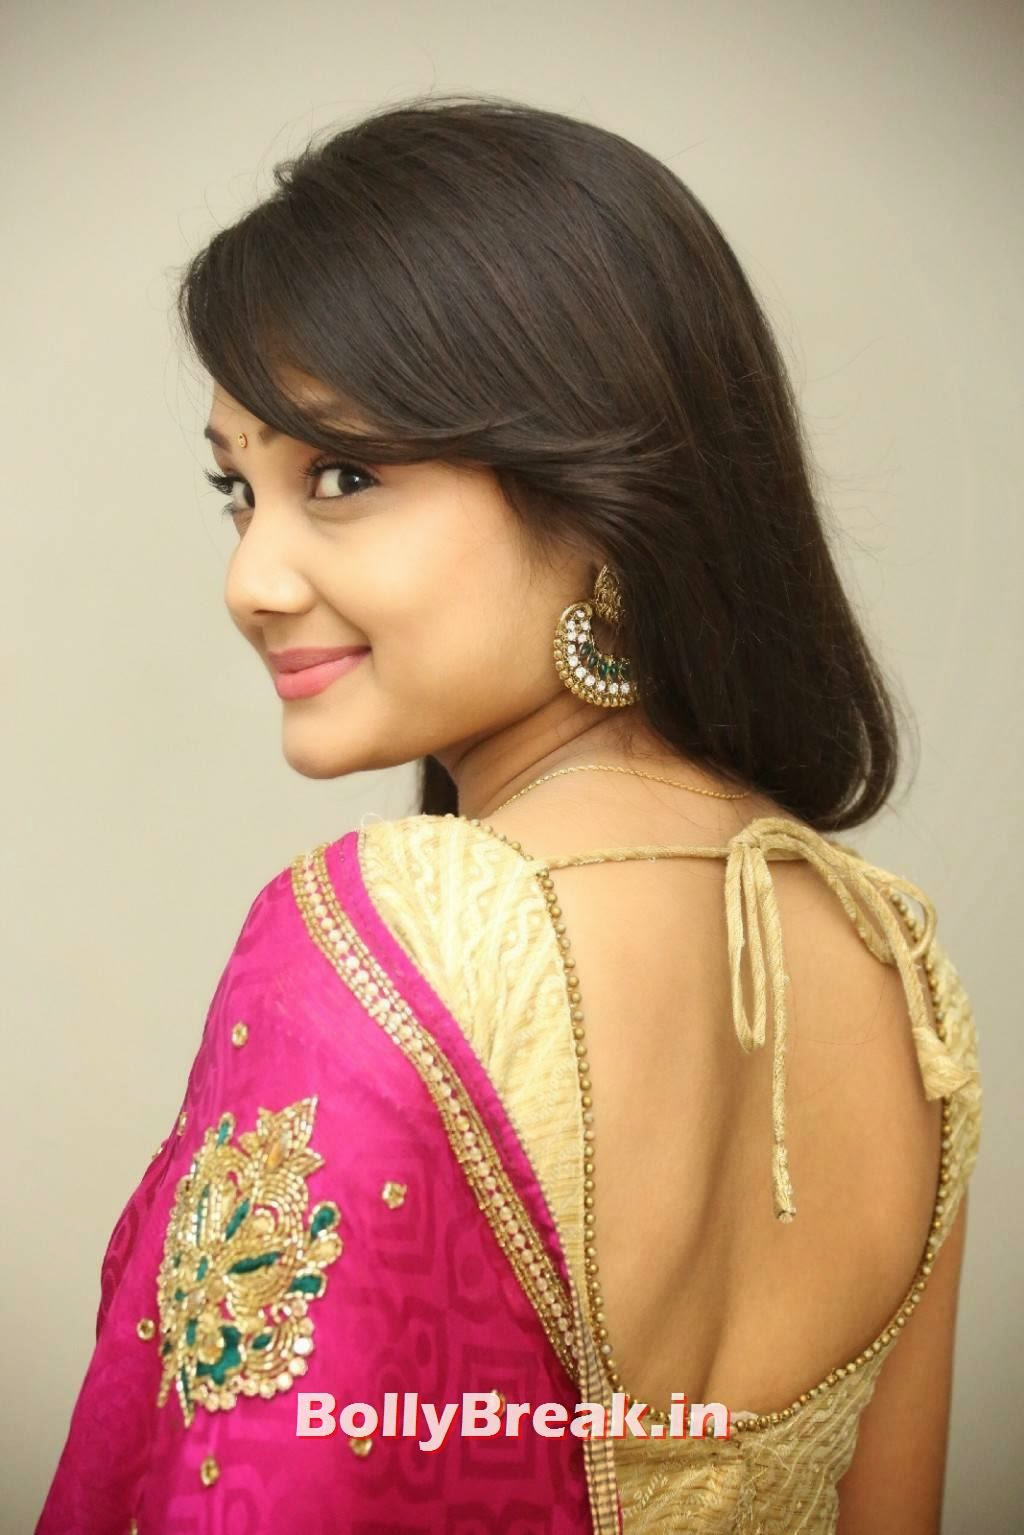 , Priyanka Photo gallery in Saree - 2014